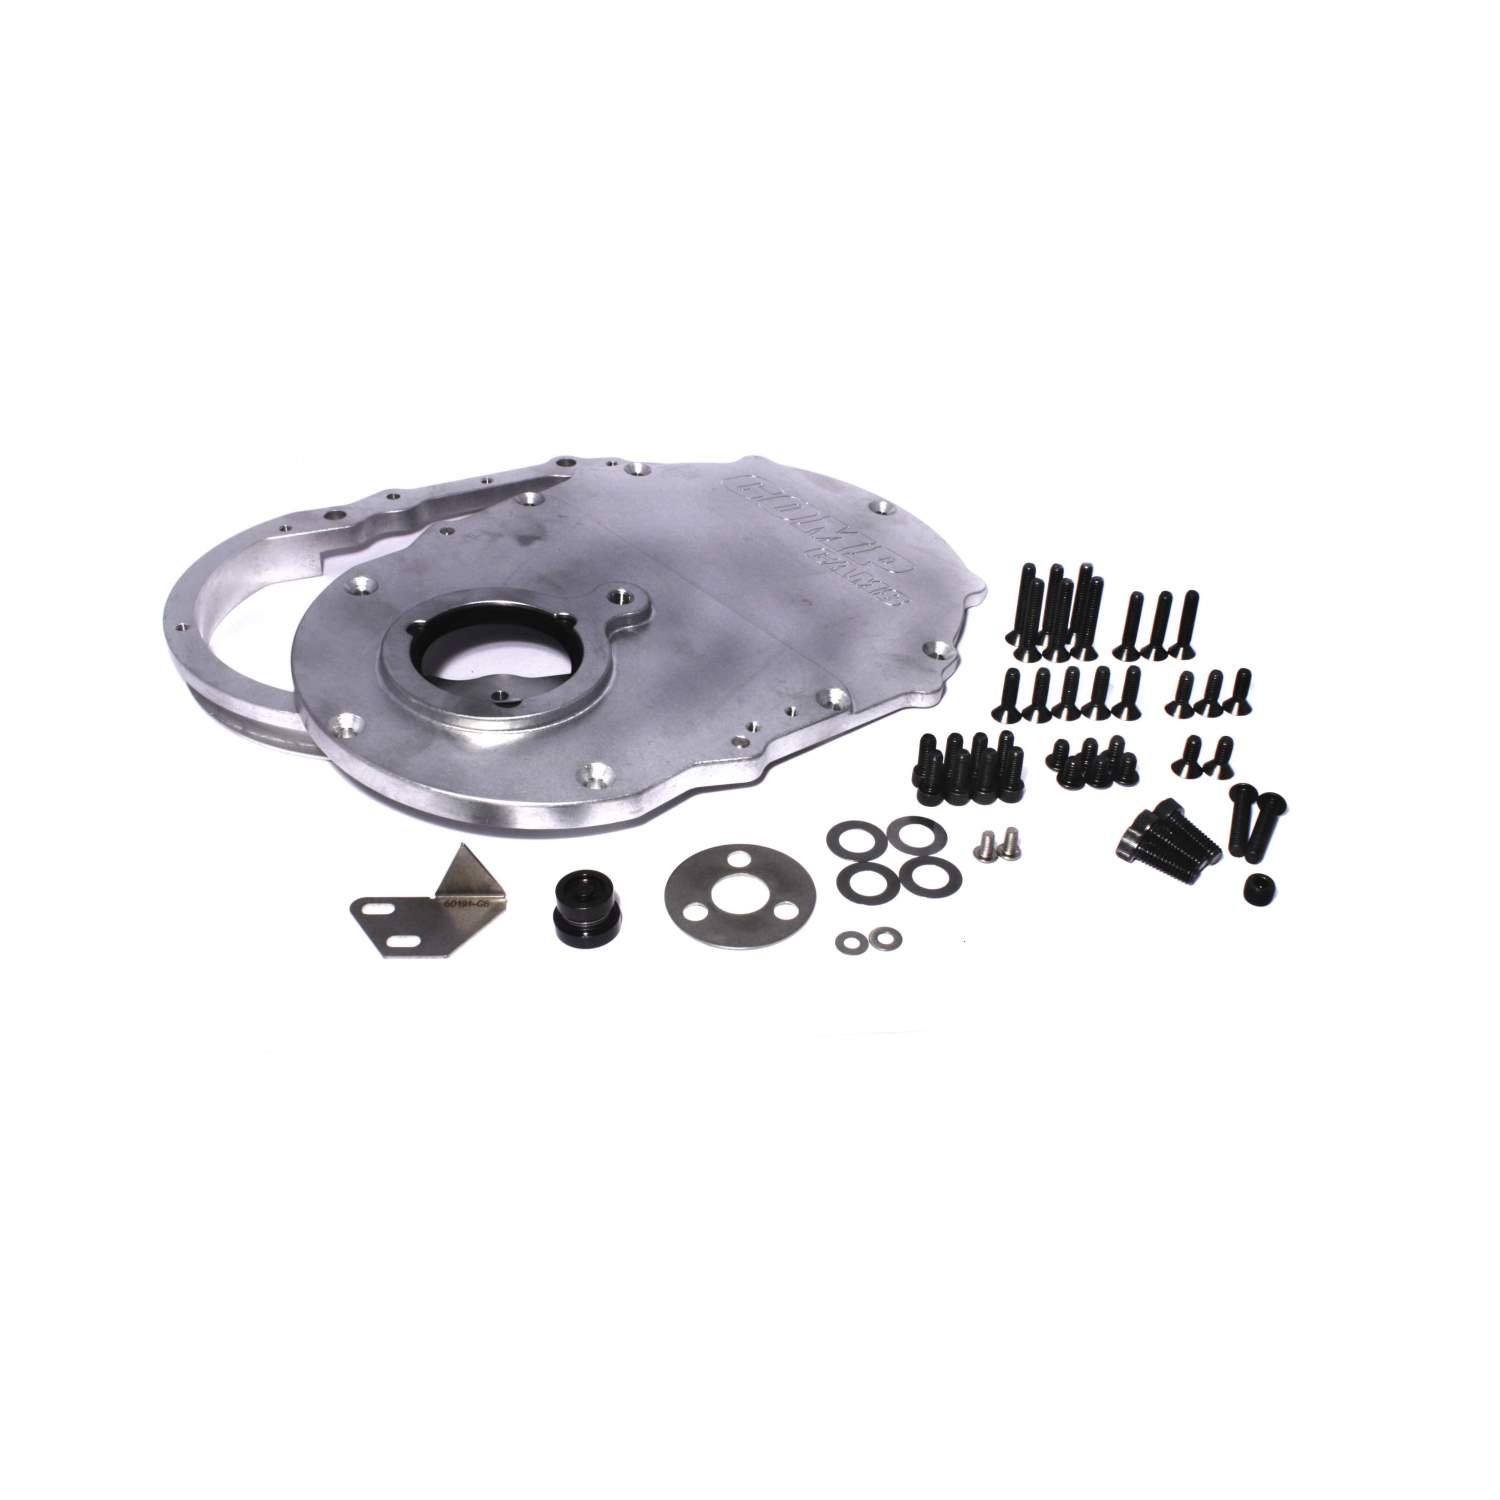 COMP Cams 217 Billet Aluminum Timing Cover for Big Block Chevy Generation VI 2 Piece